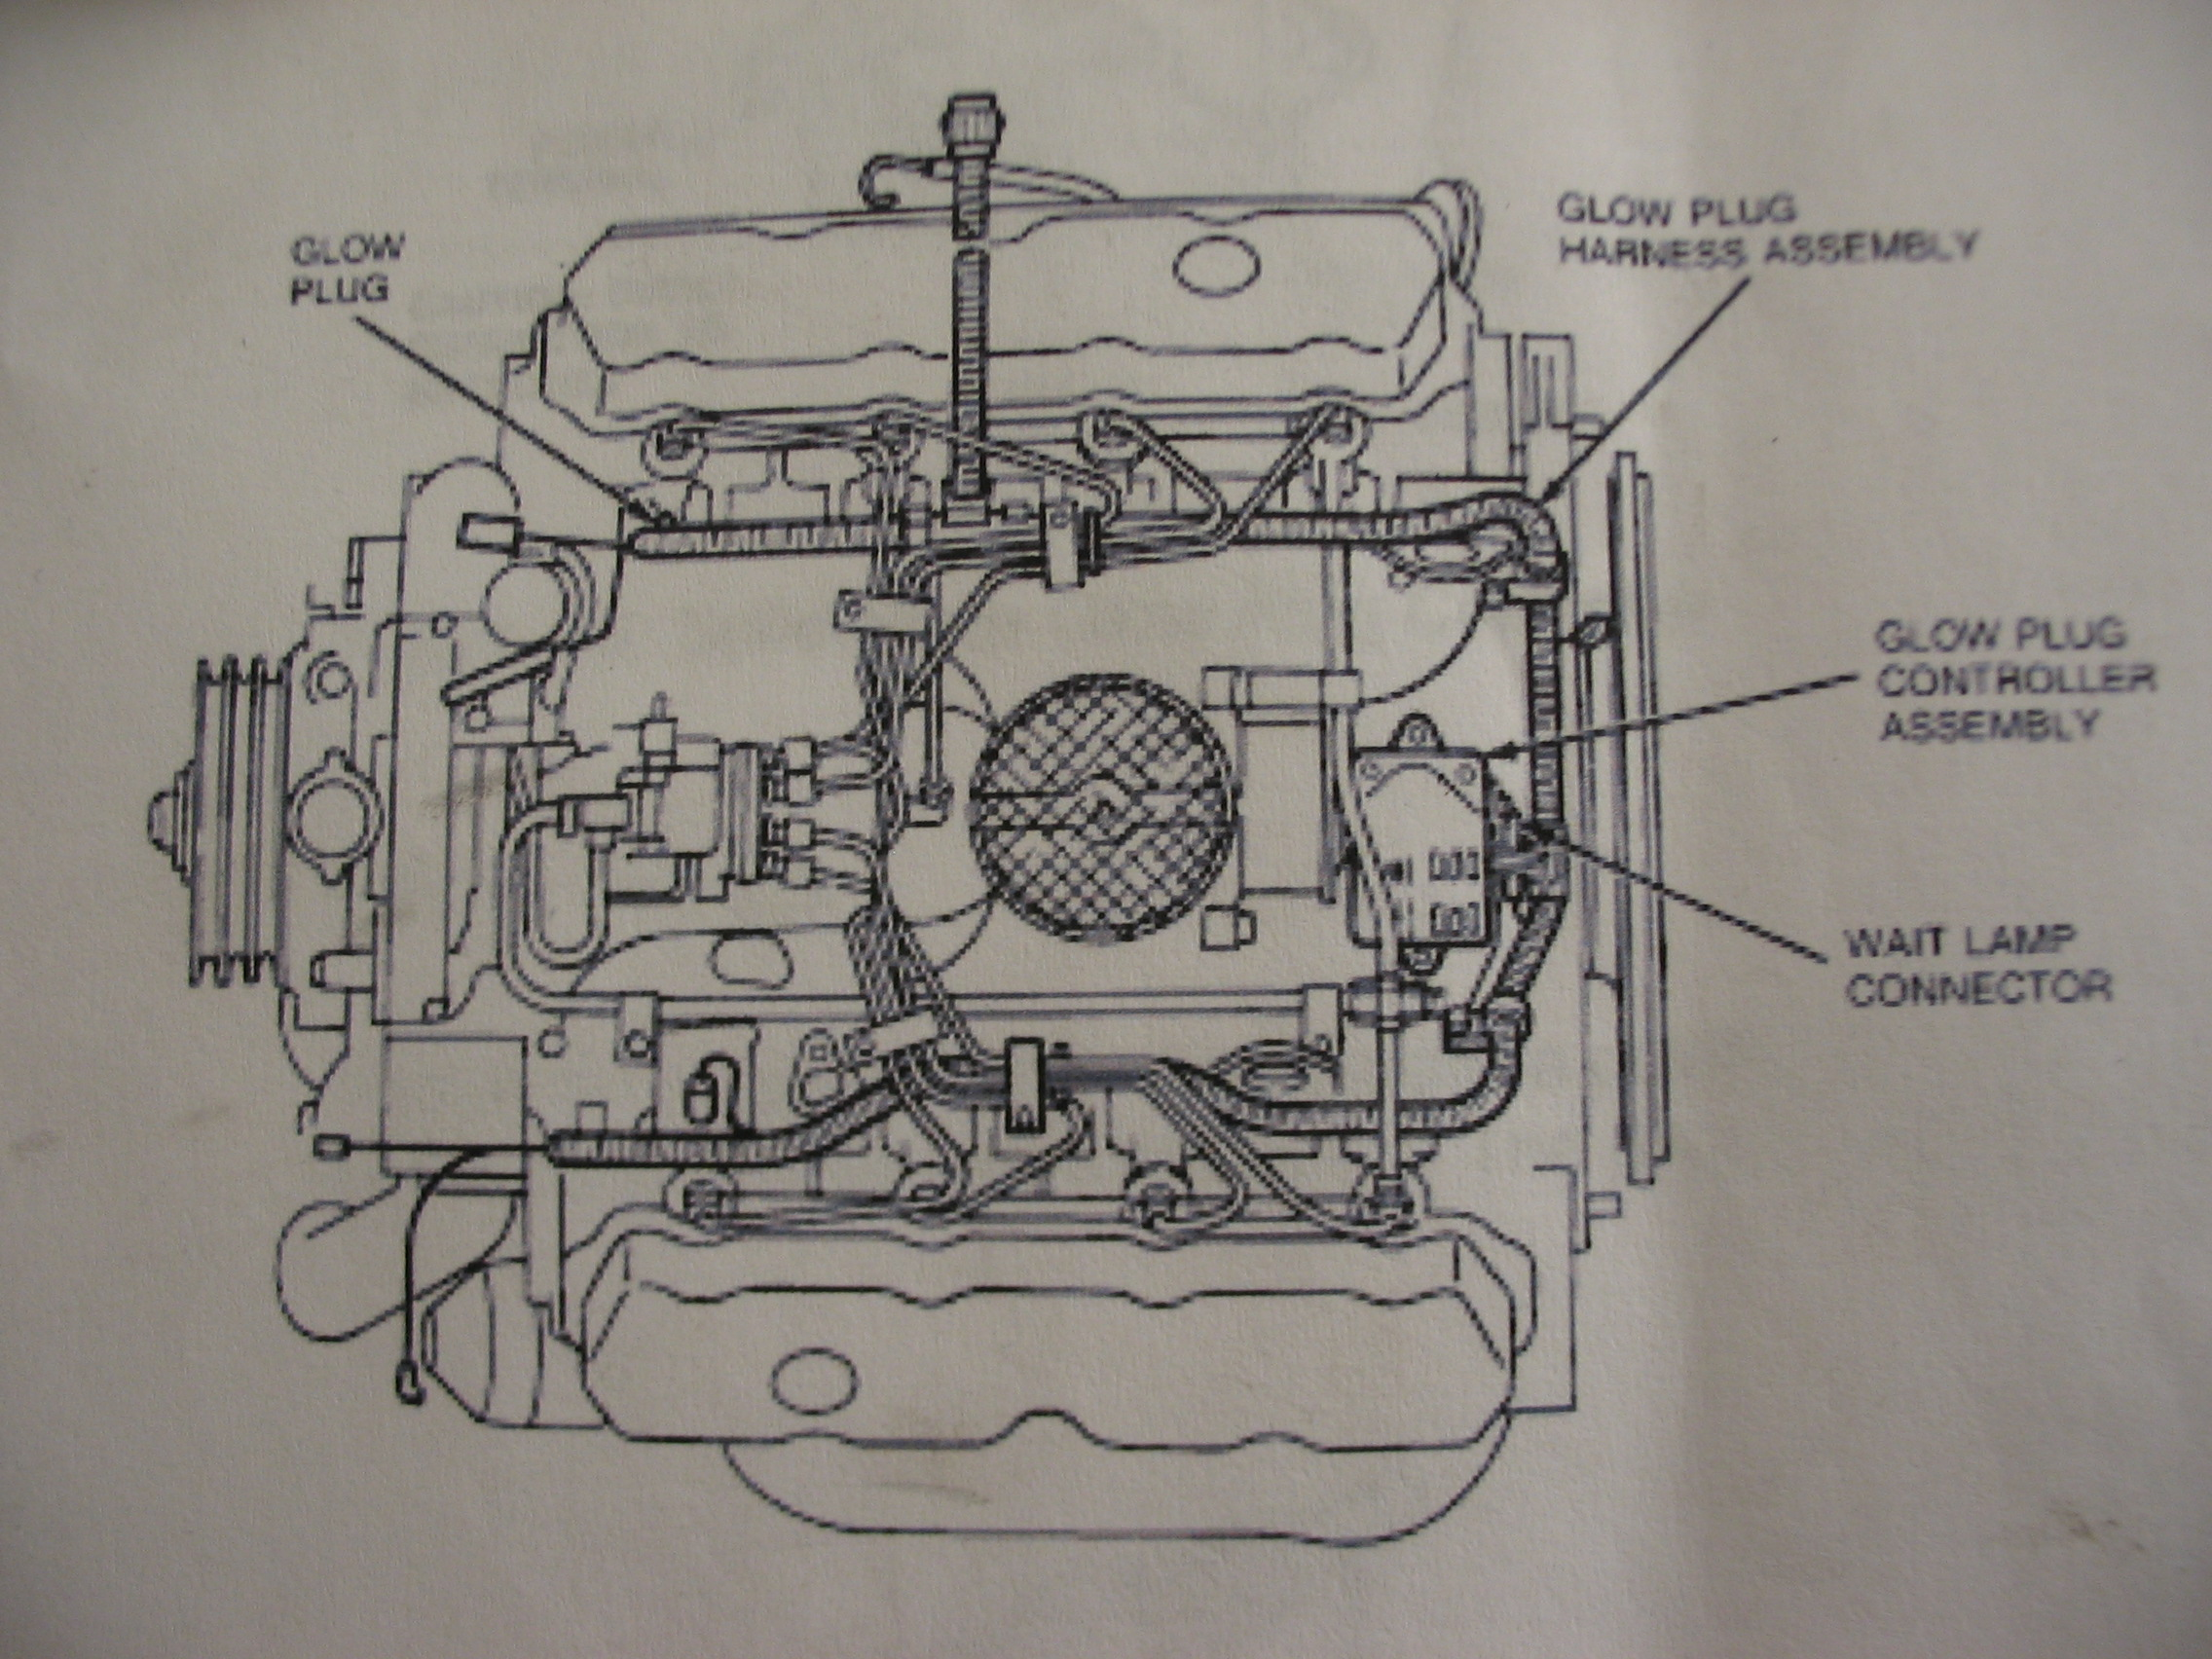 Ford Diagrams 91 Thunderbird Wiring Diagram Glow Plug Location On Engine